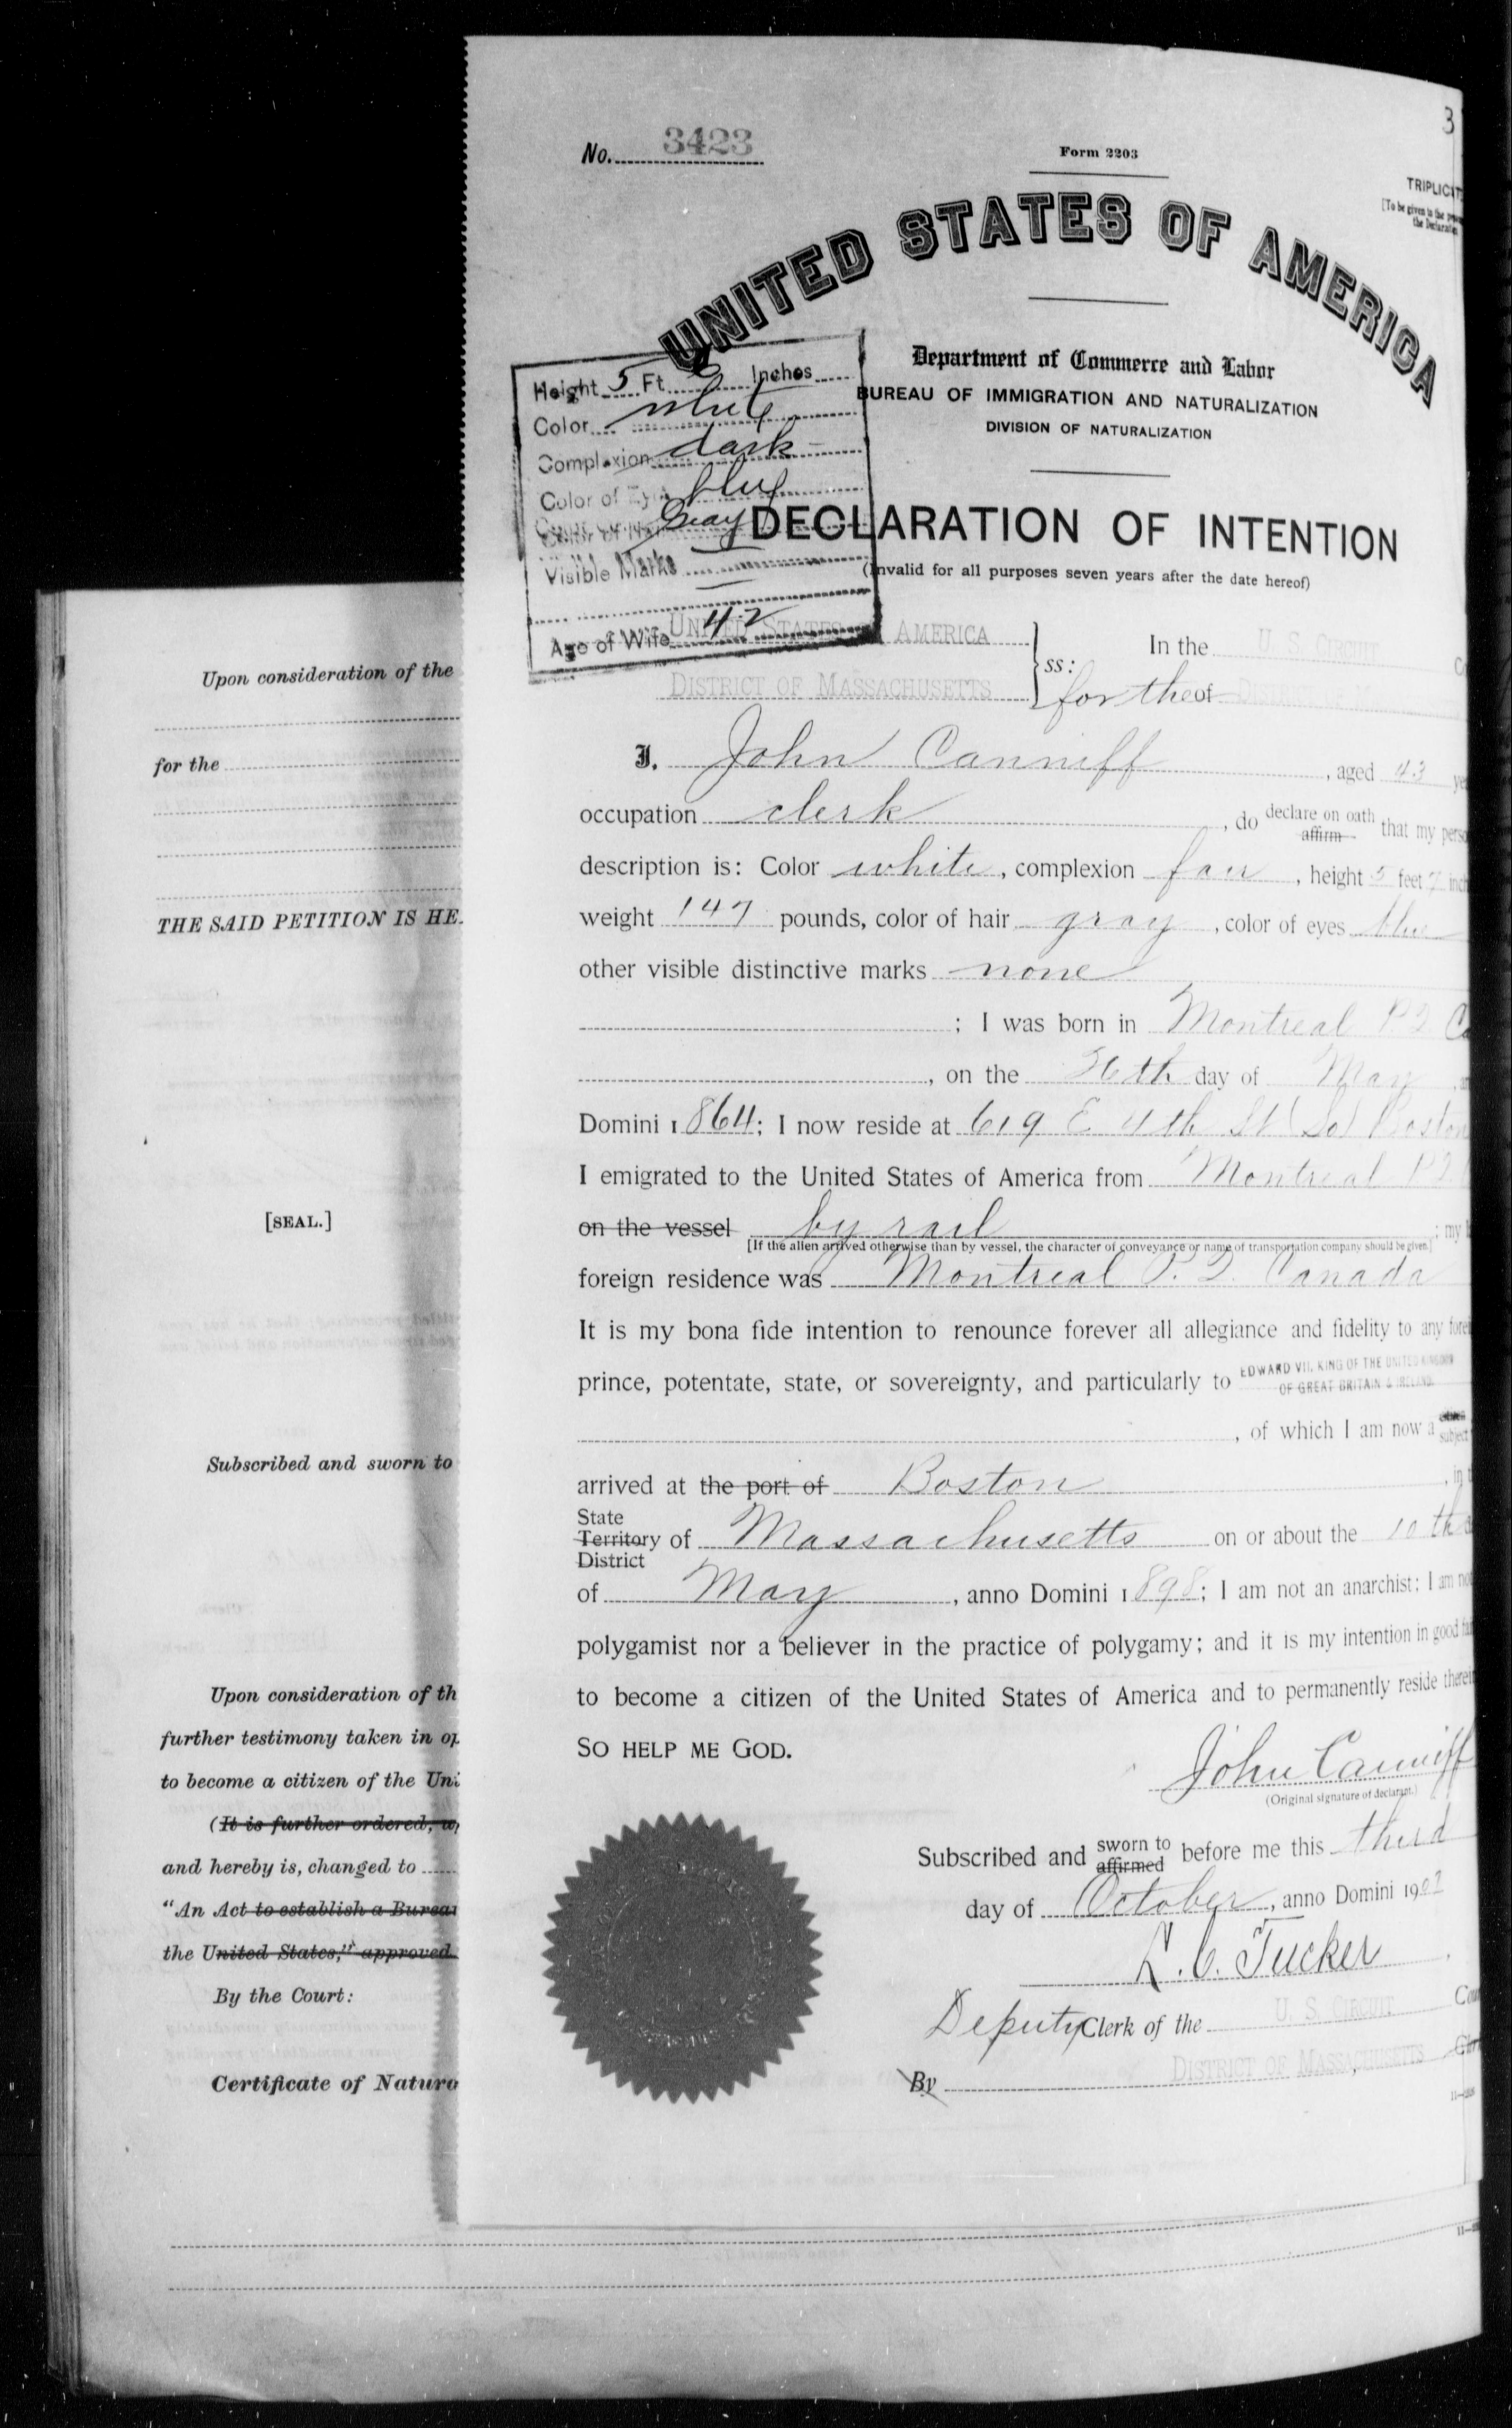 Petition for Naturalization of John Canniff